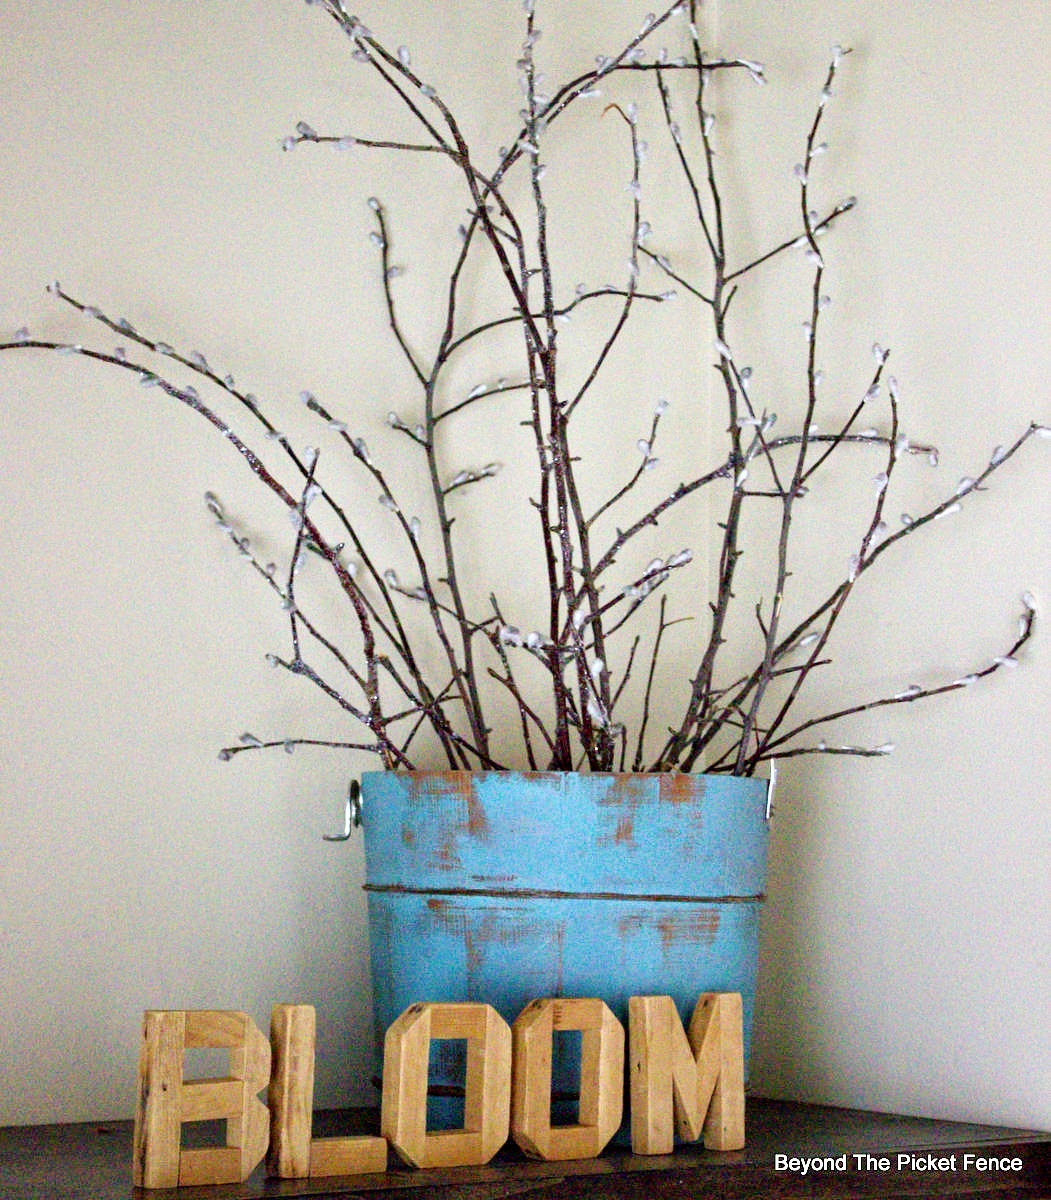 spring pussy willows, DIY, bloom, spring projects, http://bec4-beyondthepicketfence.blogspot.com/2015/03/bestofdiy-spring-pussy-willows.html